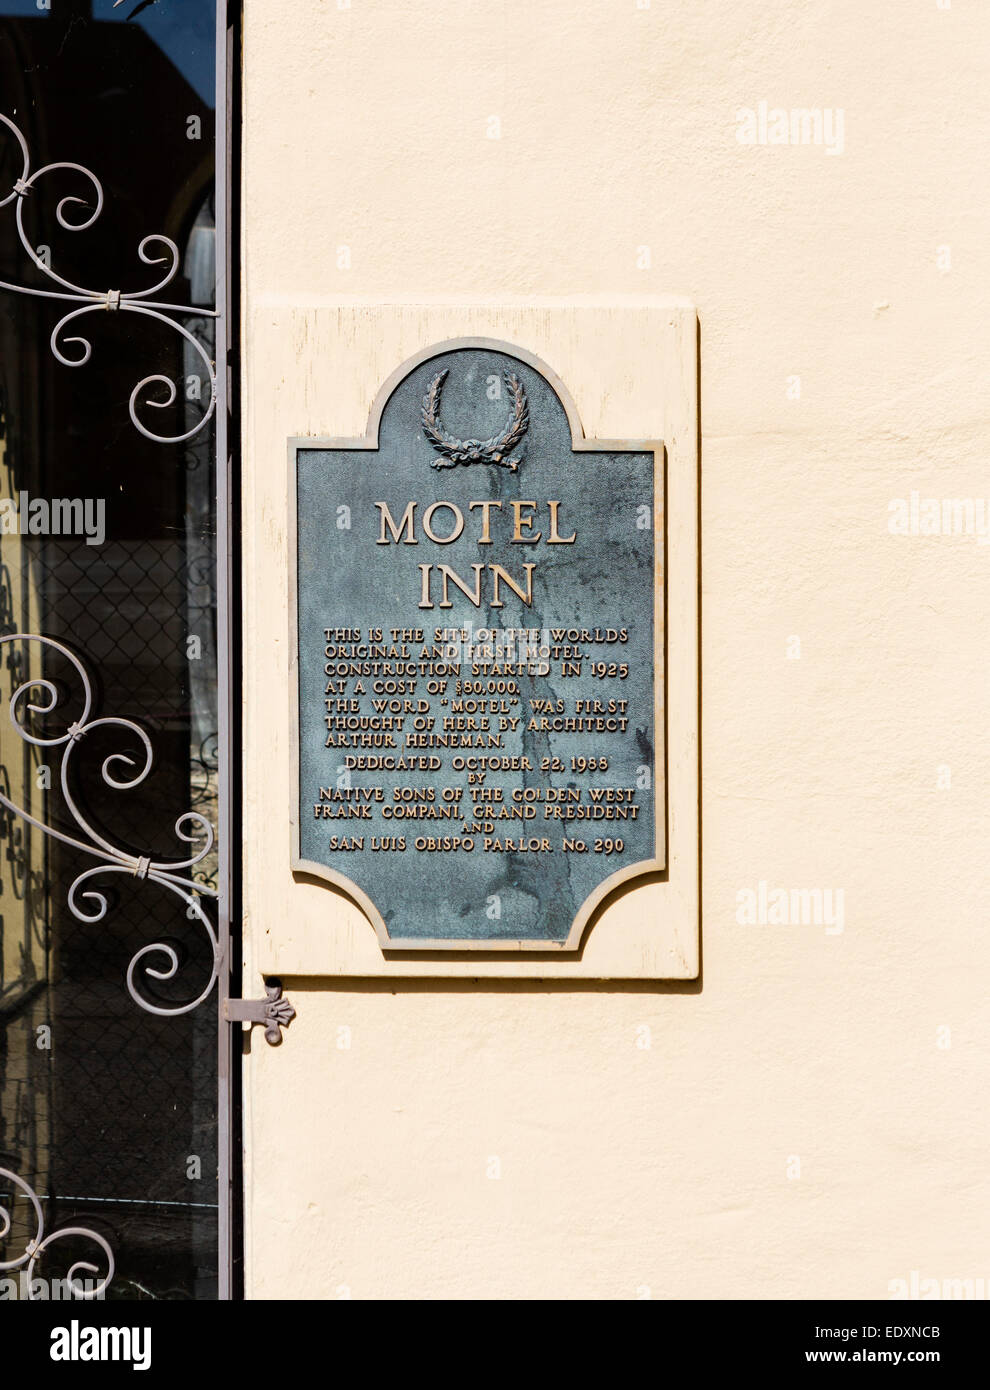 Plaque outside the derelict  Motel Inn, formerly Milestone Mo-Tel, world's first motel opened in 1925, San Luis - Stock Image